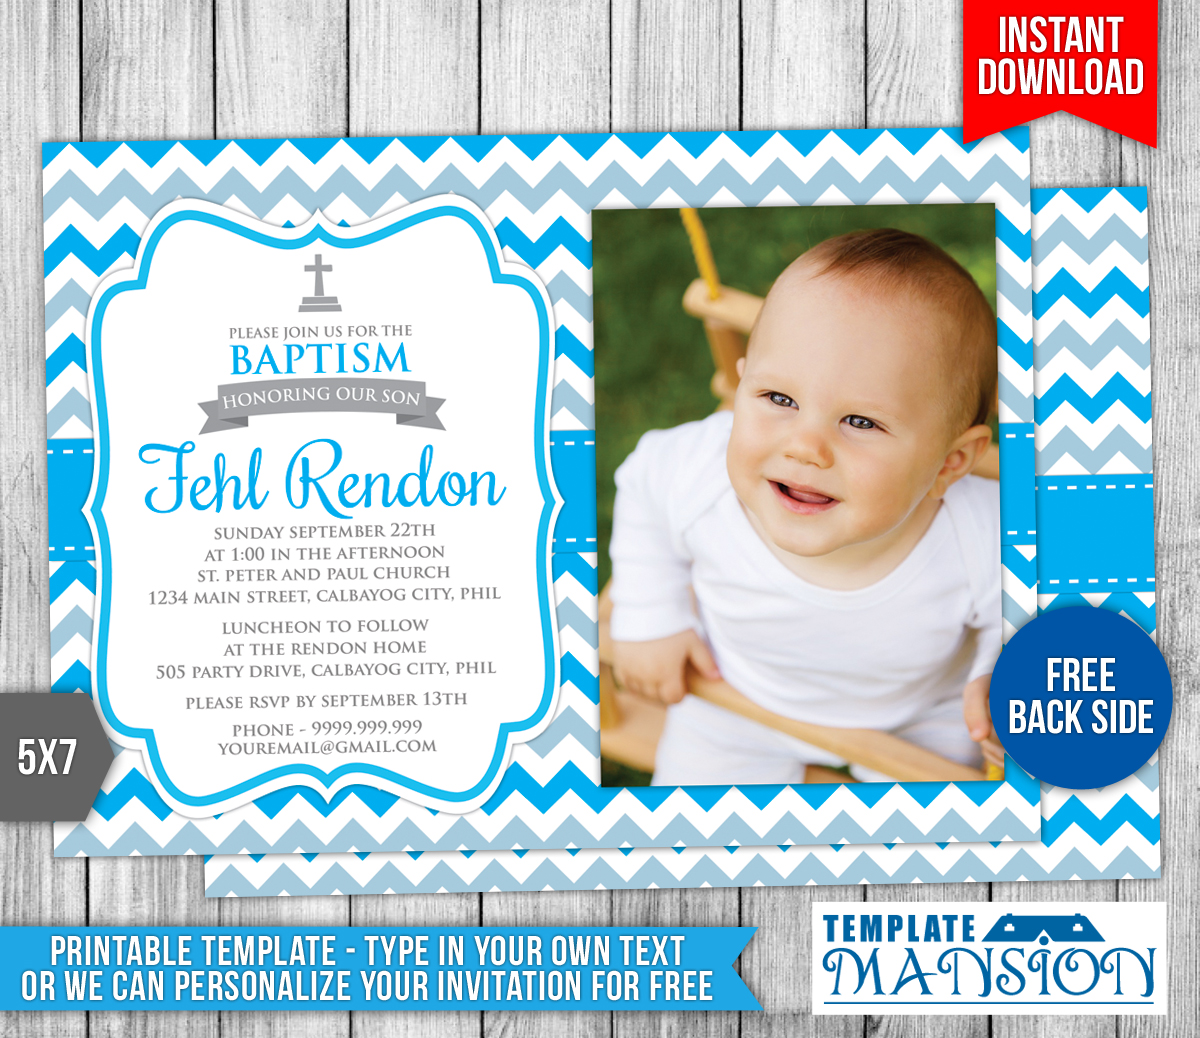 Boy Christening Invitation 2 By Templatemansion On Deviantart